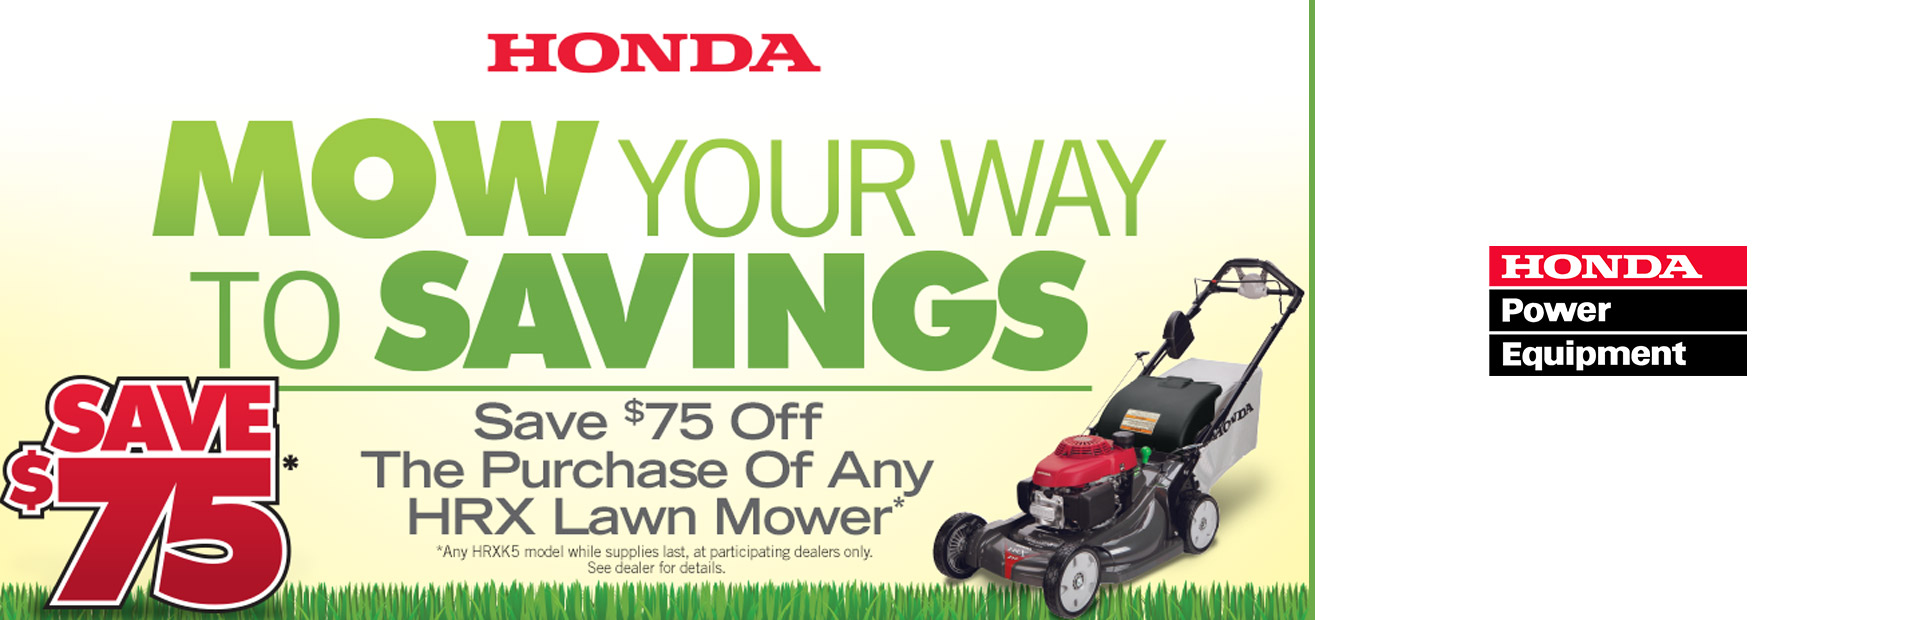 Honda Power Equipment: Mow Your Way To Savings